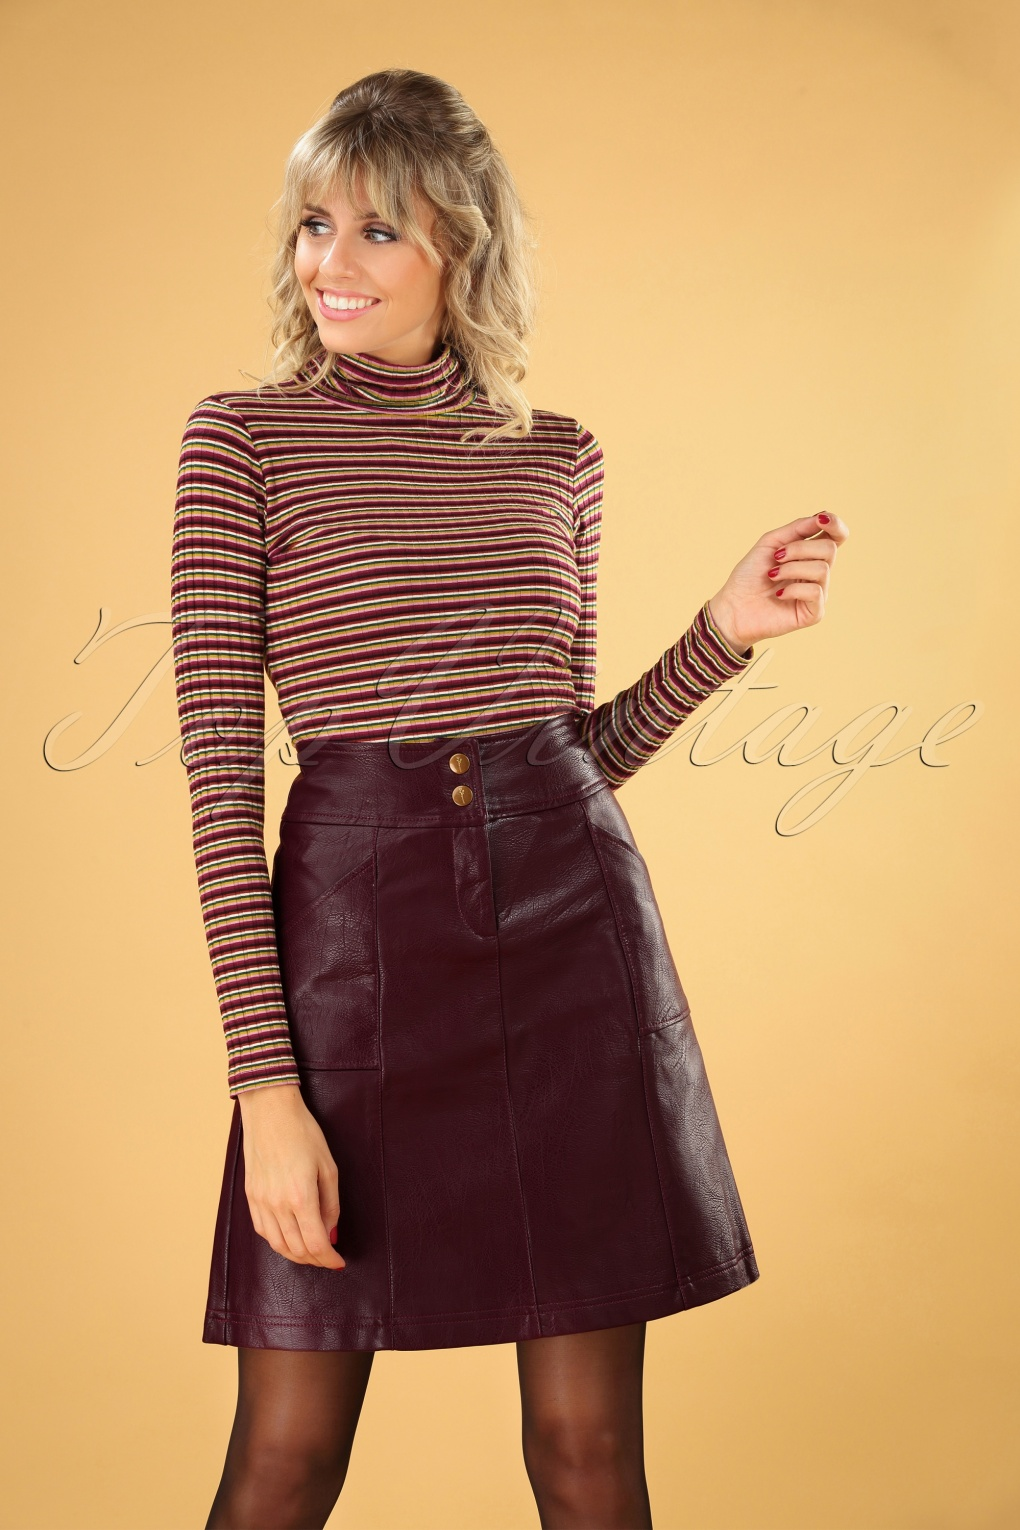 Vintage Inspired Dresses & Clothing UK 60s Bracha Skirt in Winetasting £80.18 AT vintagedancer.com